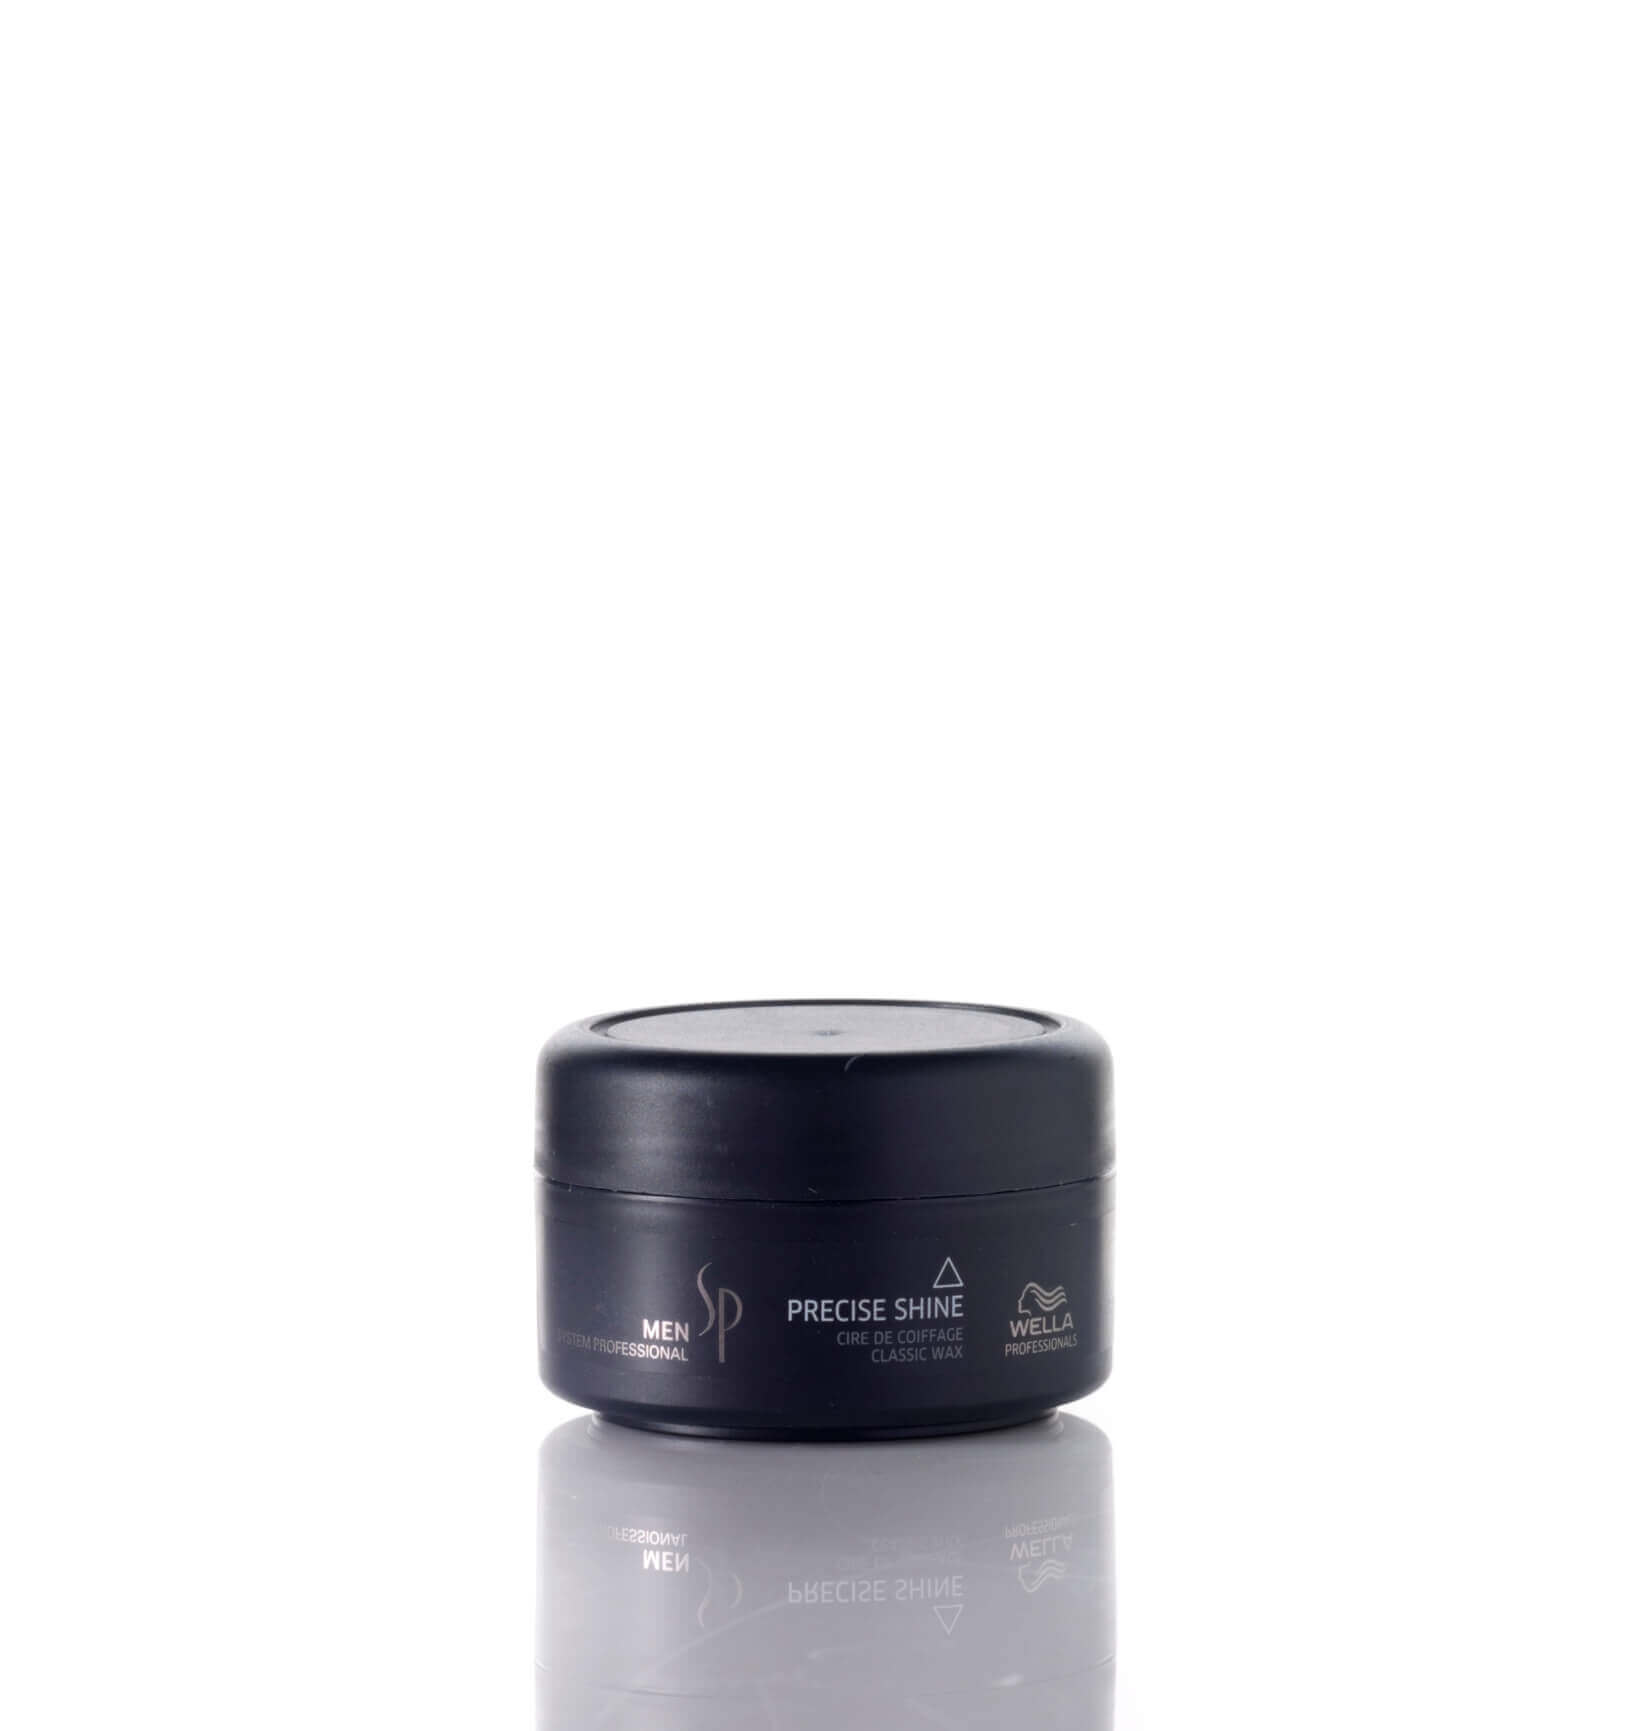 MEN PRECISE SHINE 75 ml